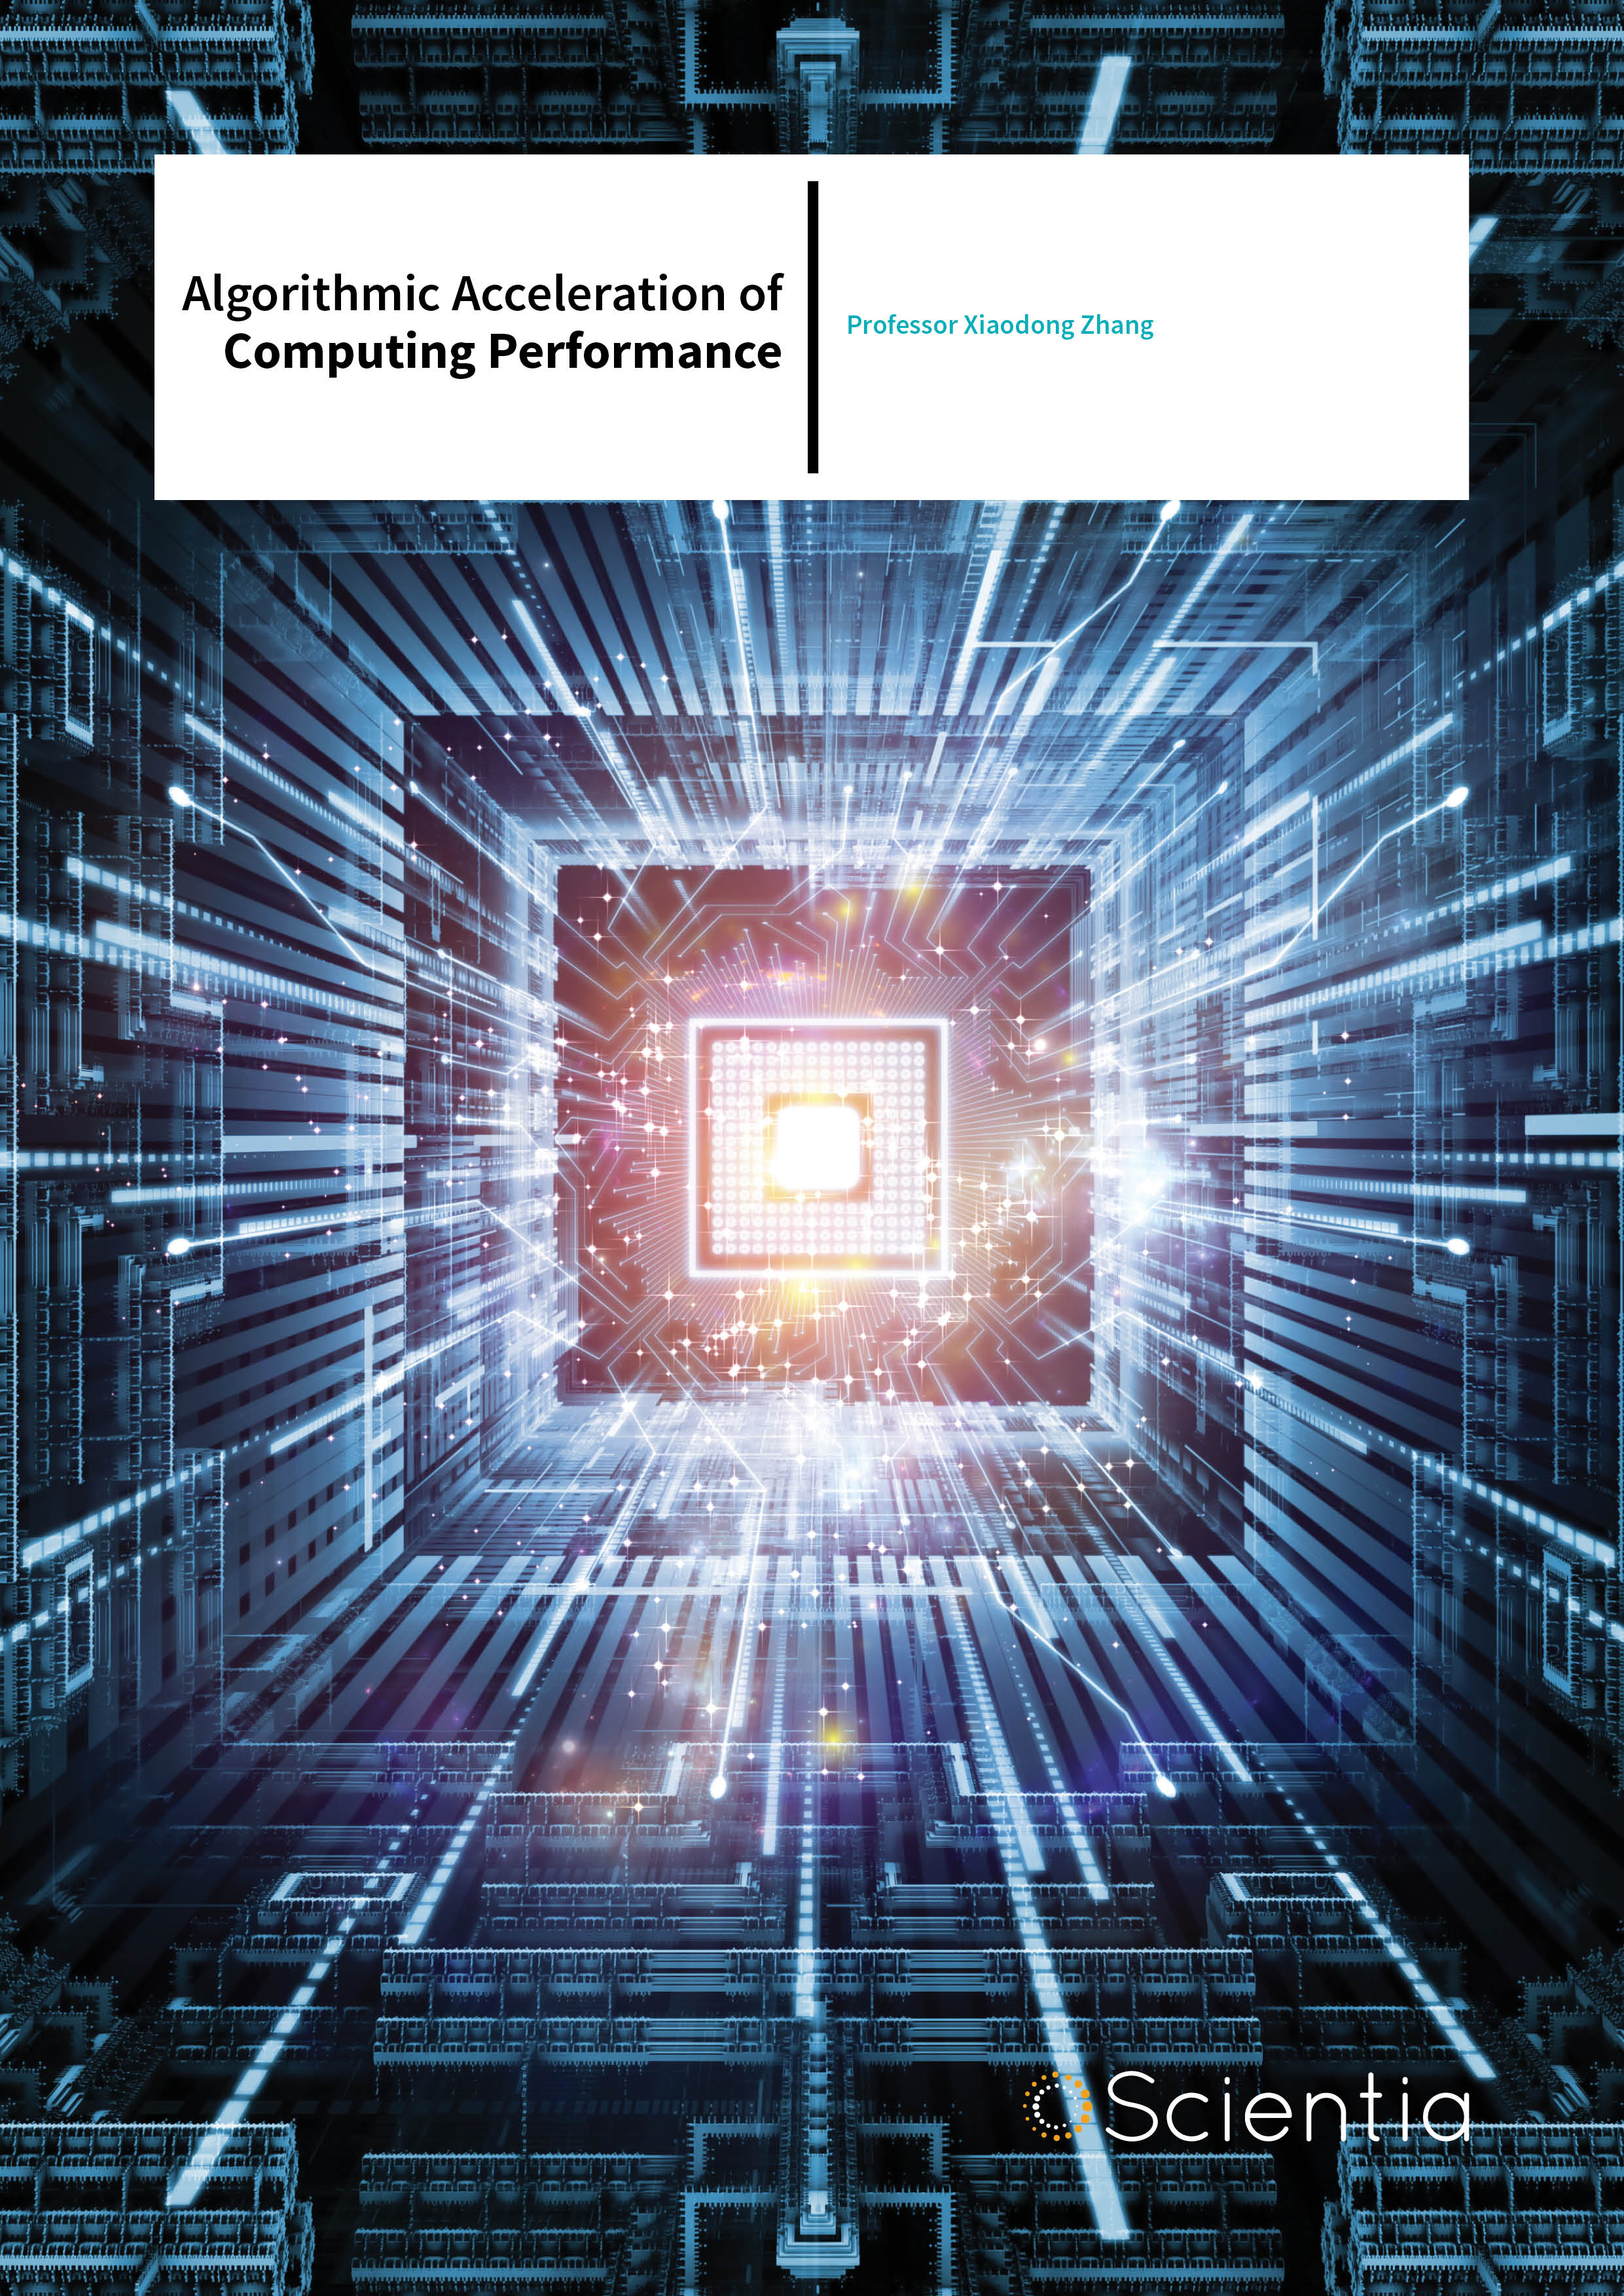 Professor Xiaodong Zhang – Algorithmic Acceleration Of Computing Performance